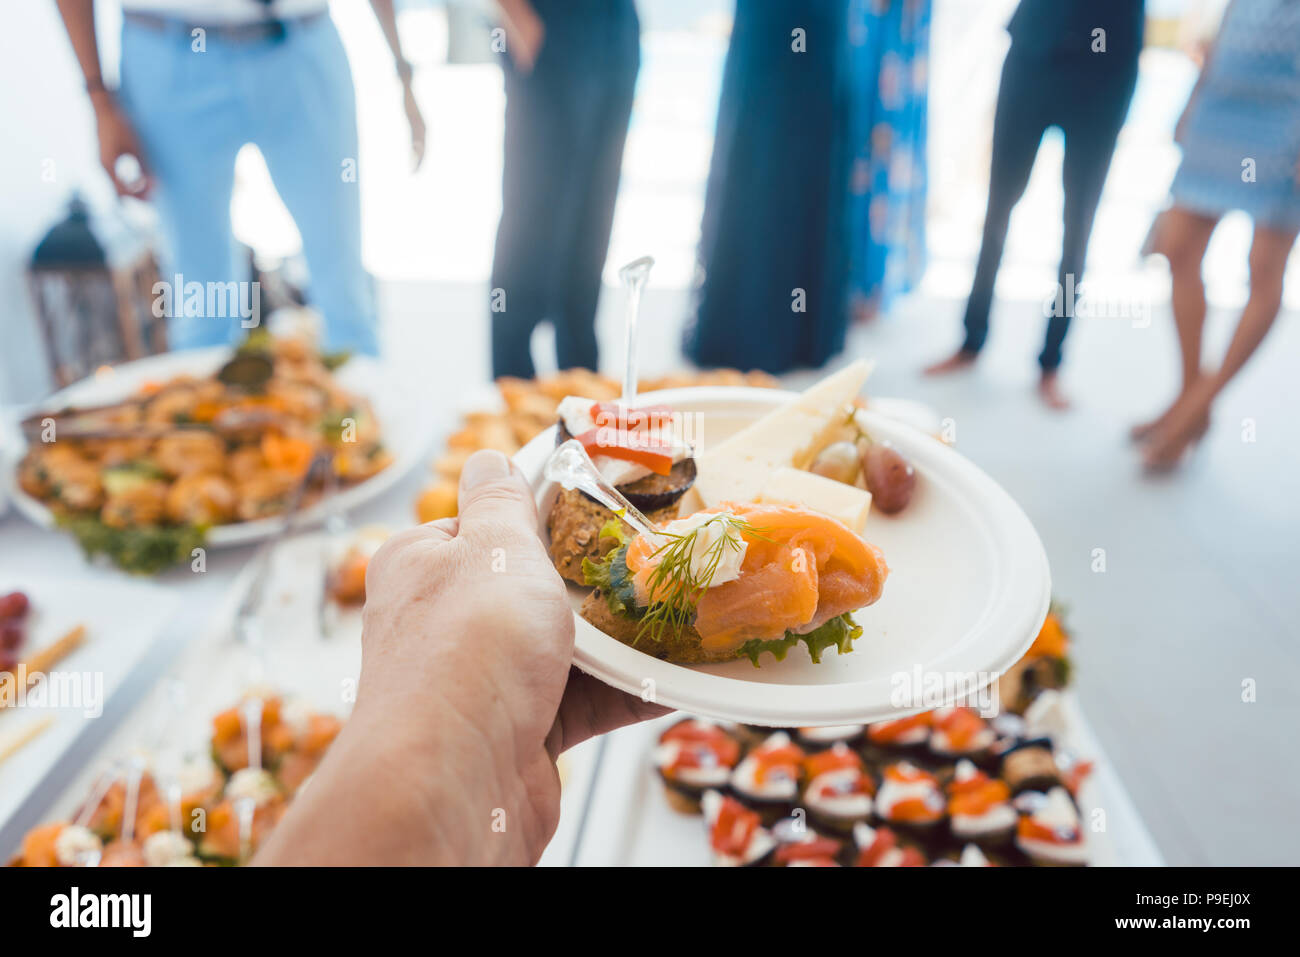 Man helping himself on Buffet of party outdoors taking food  - Stock Image